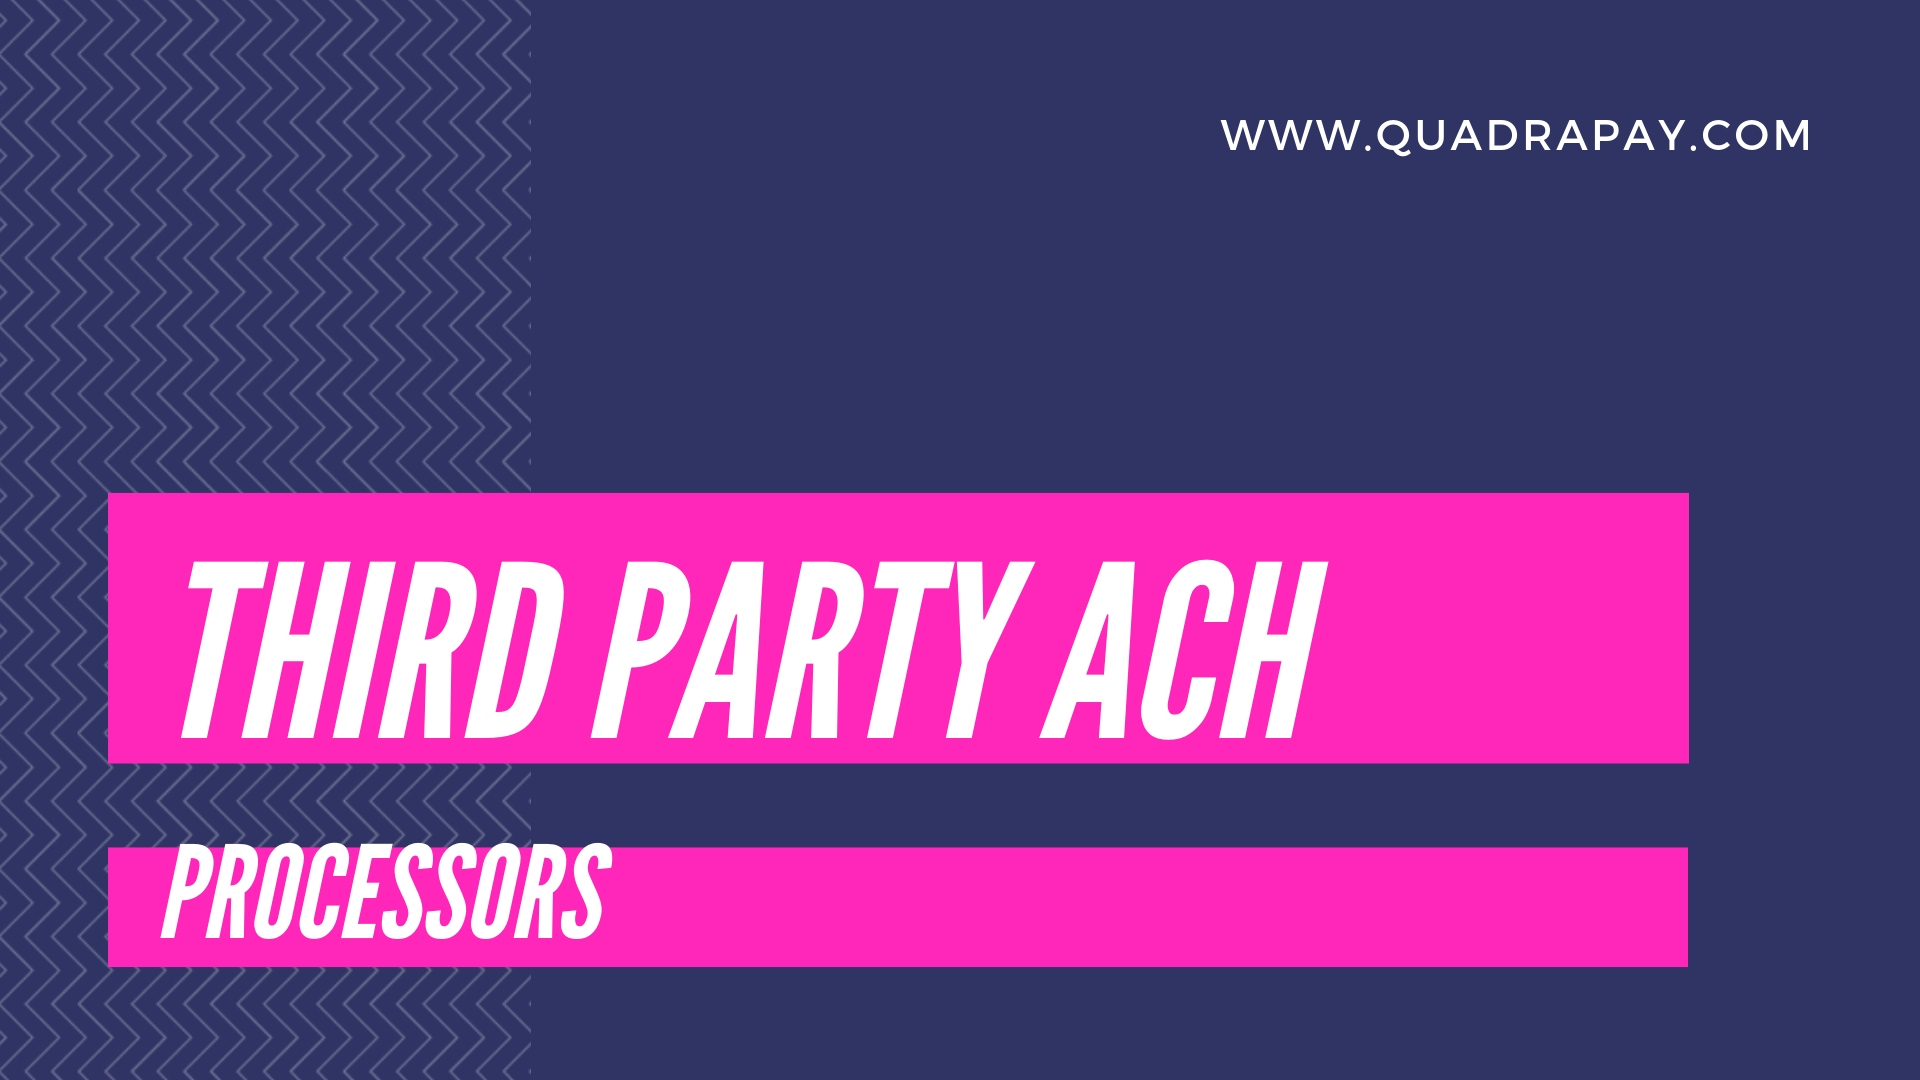 Third Party ACH Processors By Quadrapay